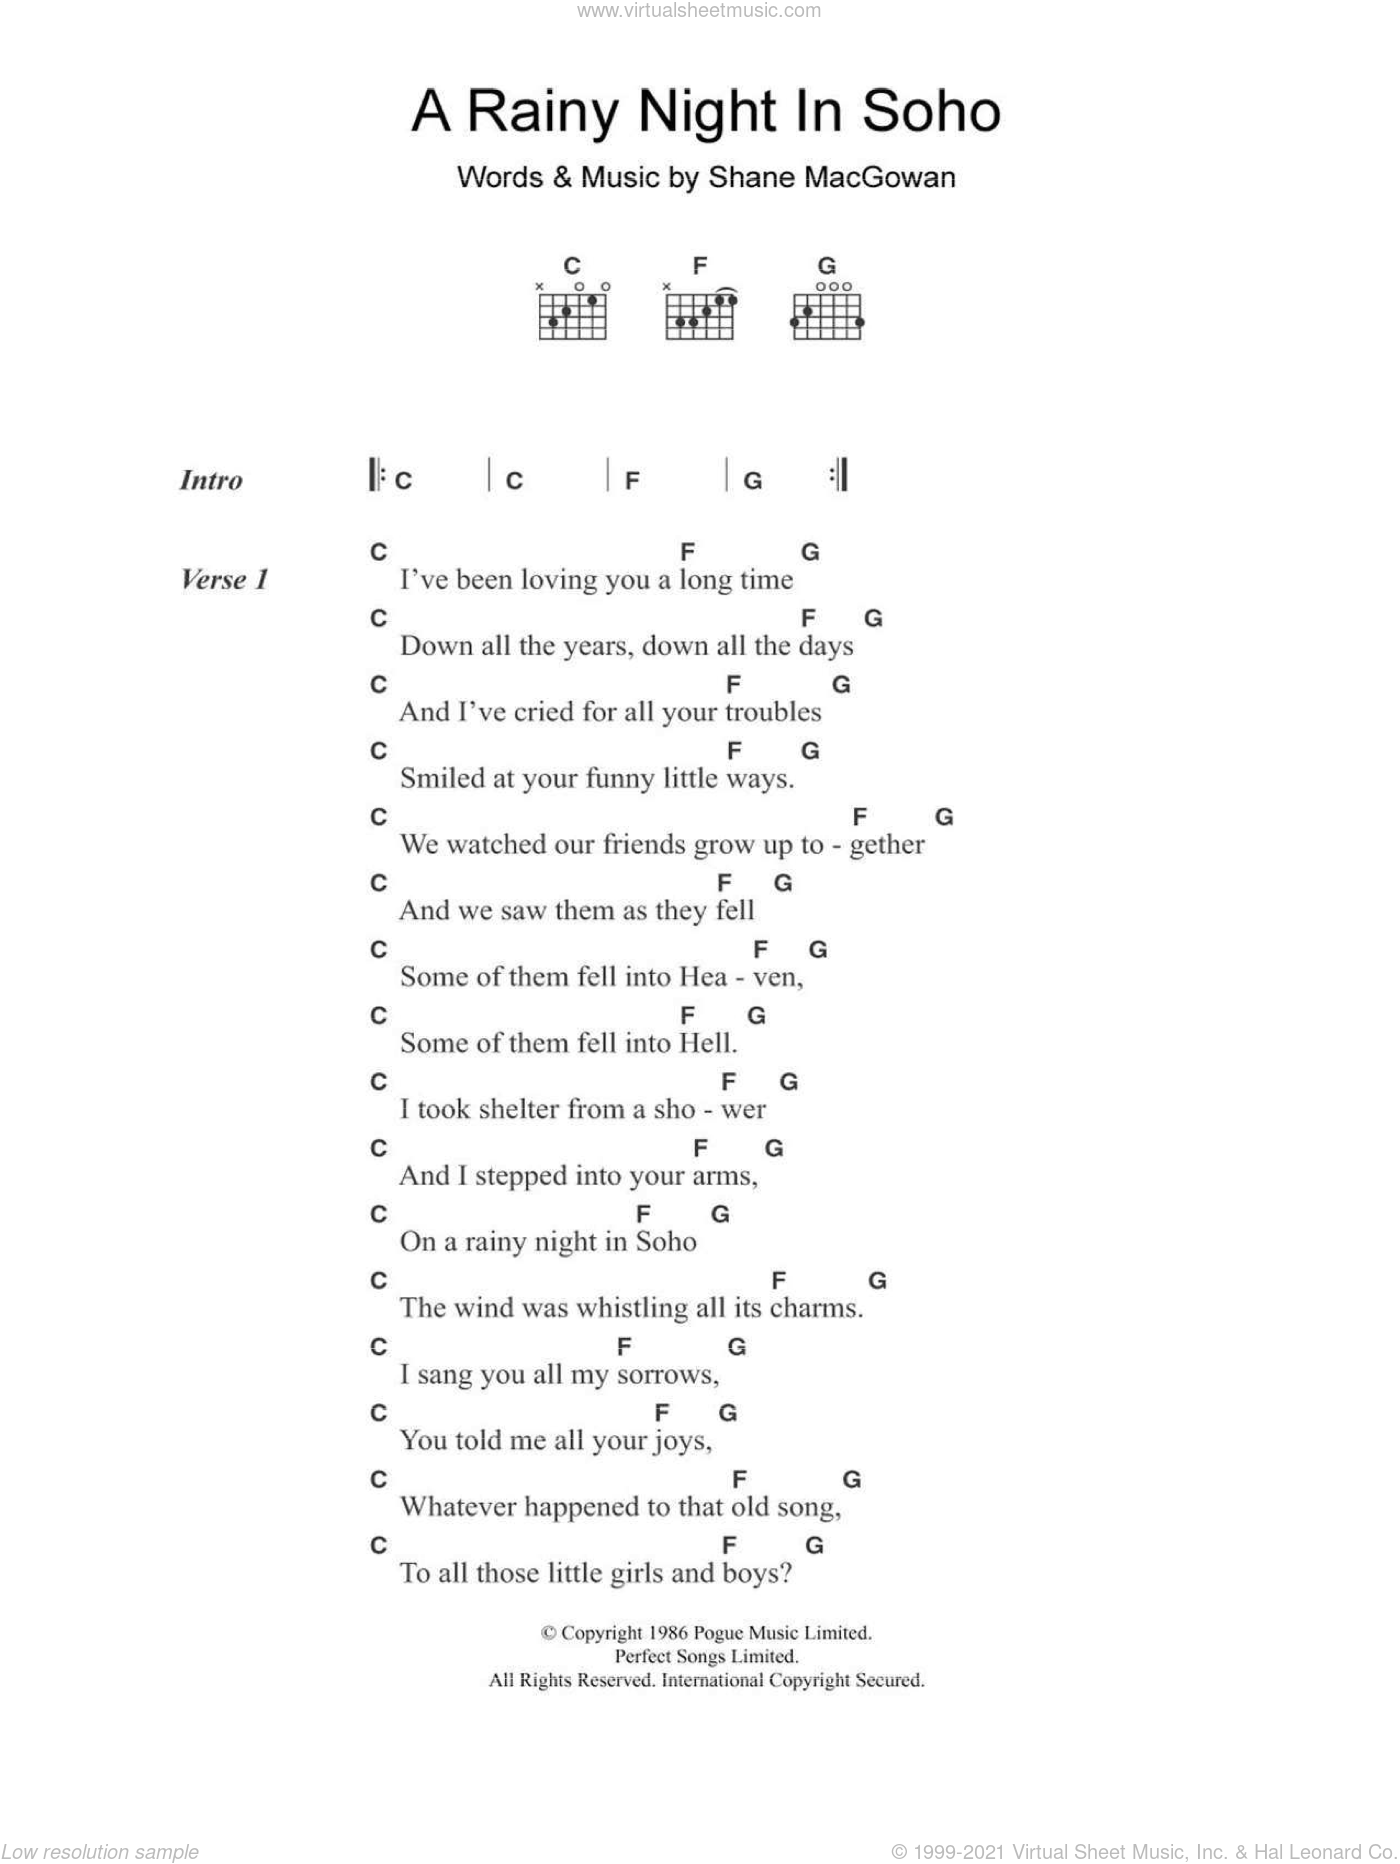 A Rainy Night In Soho sheet music for guitar (chords) by The Pogues and Shane MacGowan, intermediate skill level